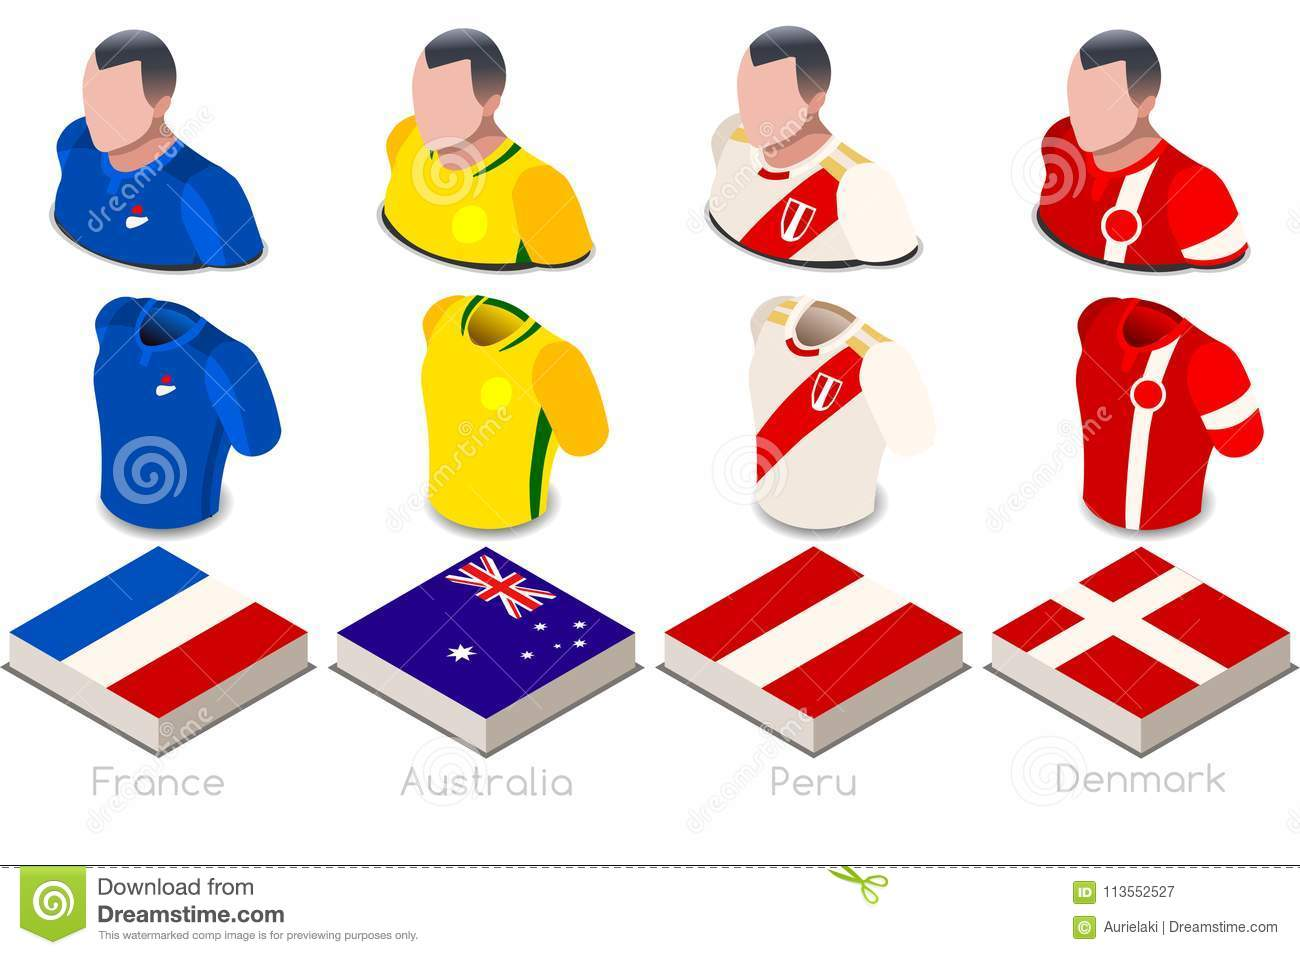 d8b3076c704 Russia 2018 soccer world cup group c of players with team shirts jersey  flags. Referee Russia soccer 2018 championship football vector illustration.